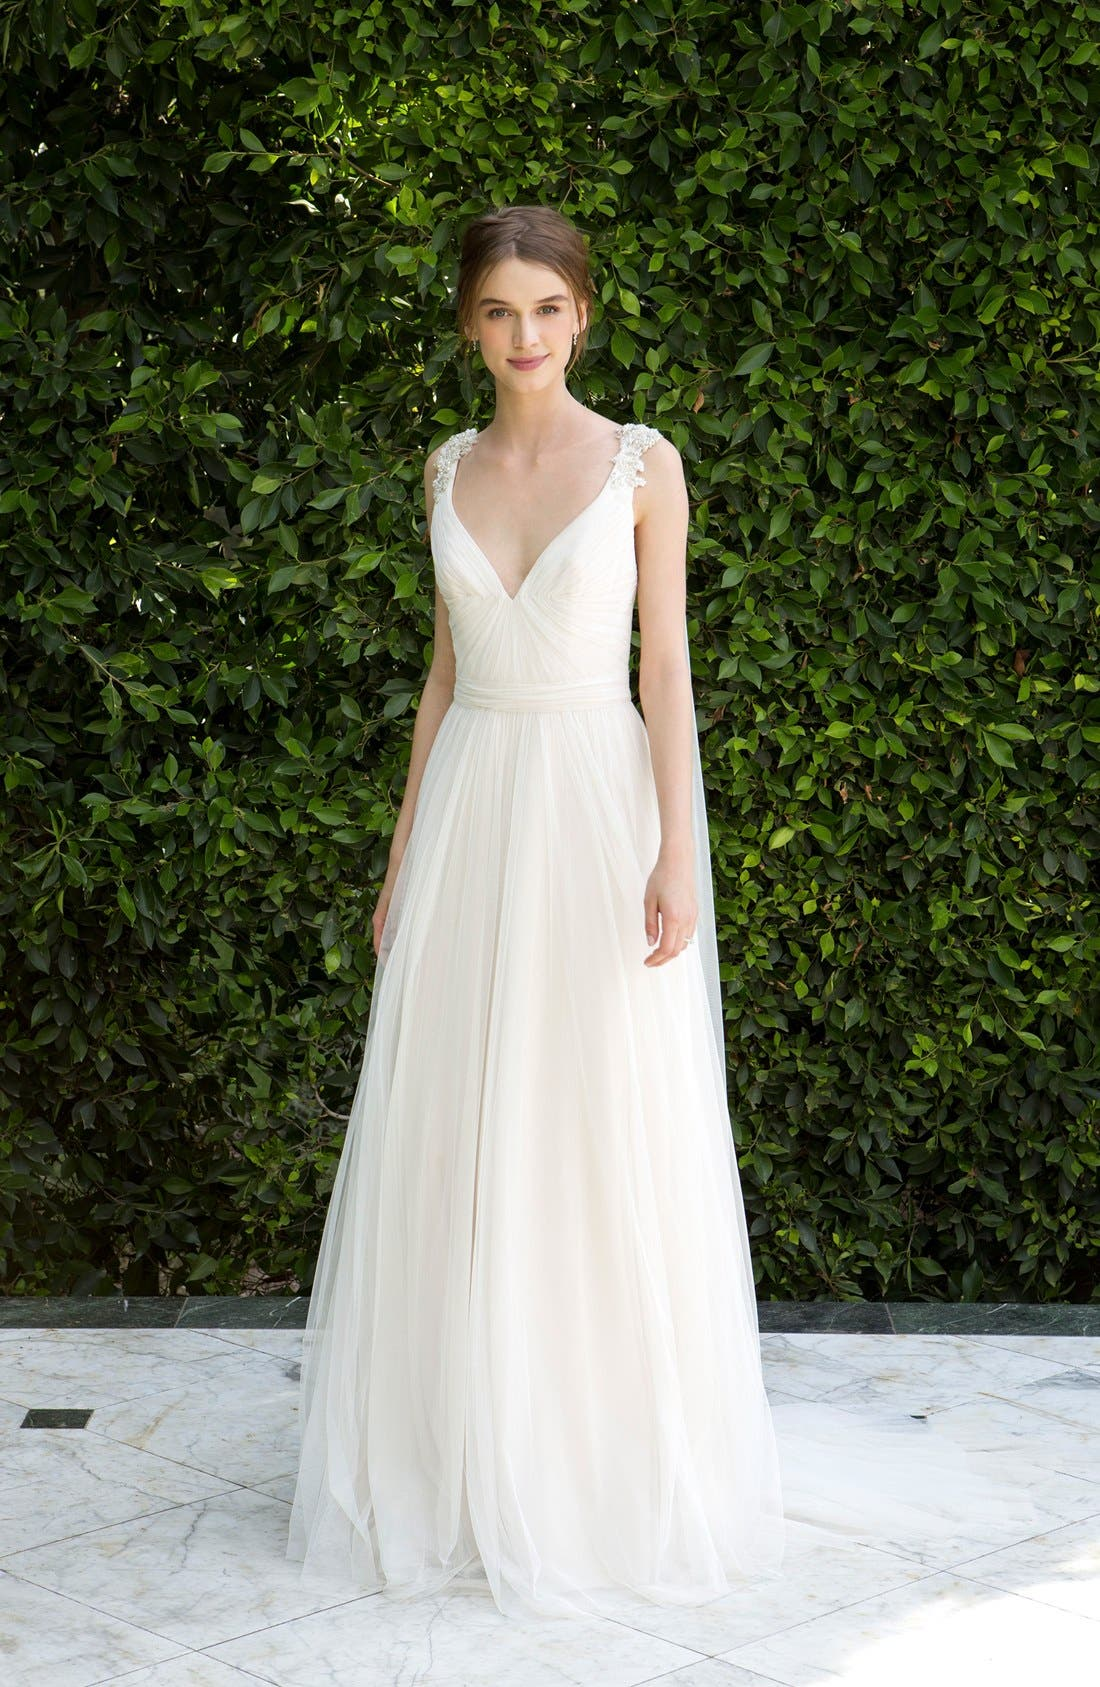 Beaded Soft Tulle Dress with Tails,                             Alternate thumbnail 3, color,                             904